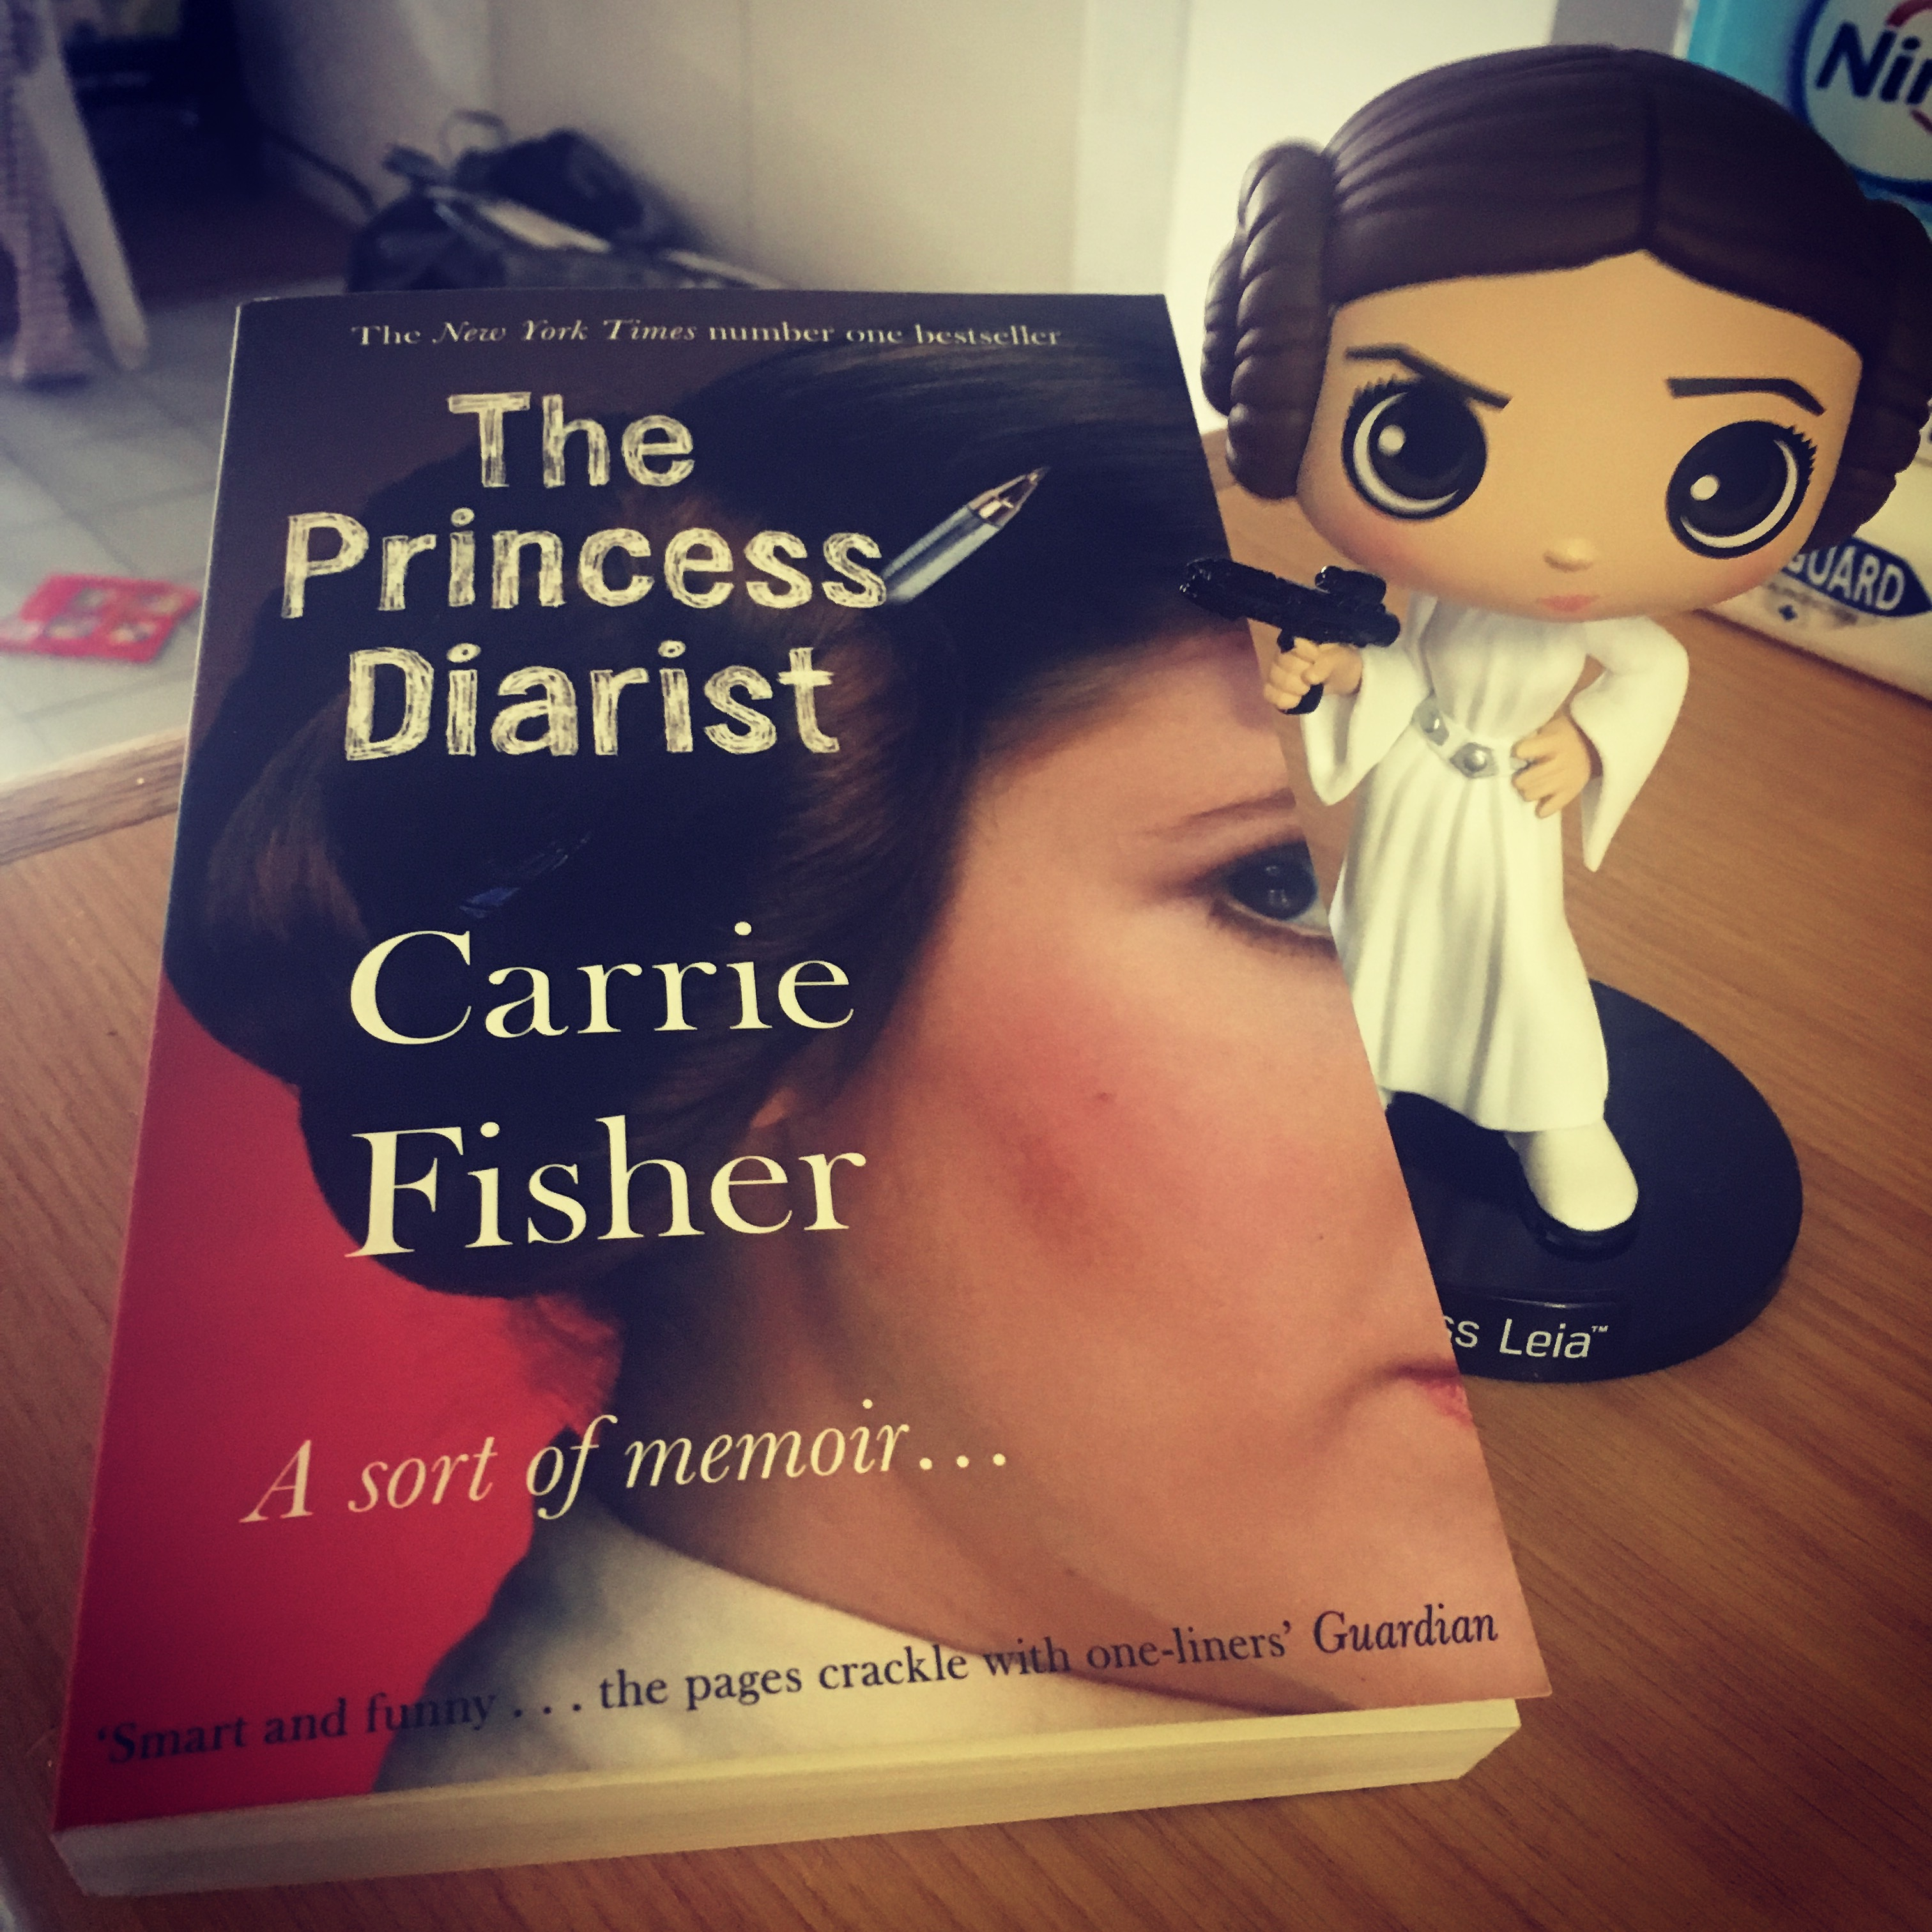 Carrie Fisher - Shiran Sugerman Image